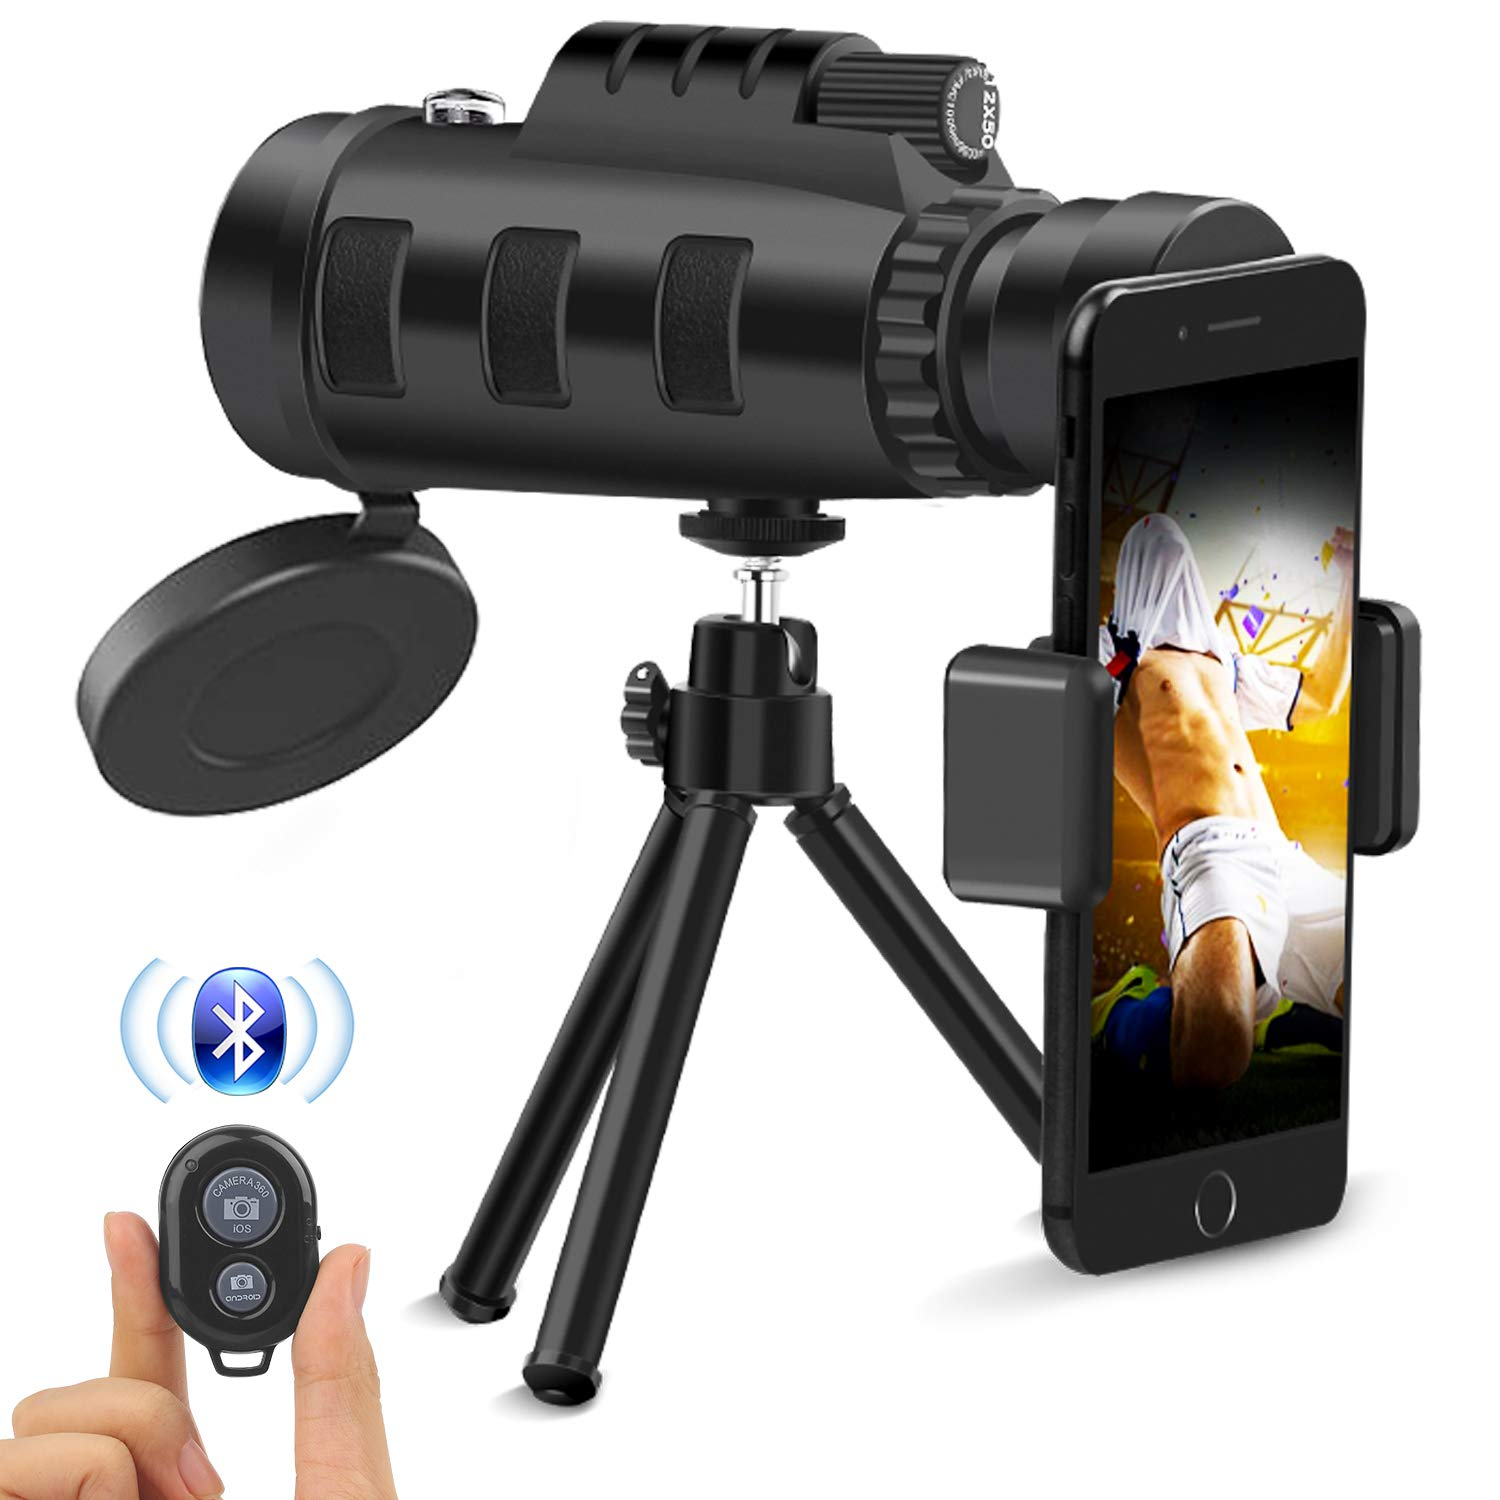 Monocular Telescope,12x50 HD Low Night Vision Waterproof High Power Prism Monocular Quick Smartphone Holder & Wireless Camera Shutter Remote Control Bird Watching Hunting Camping Travelling